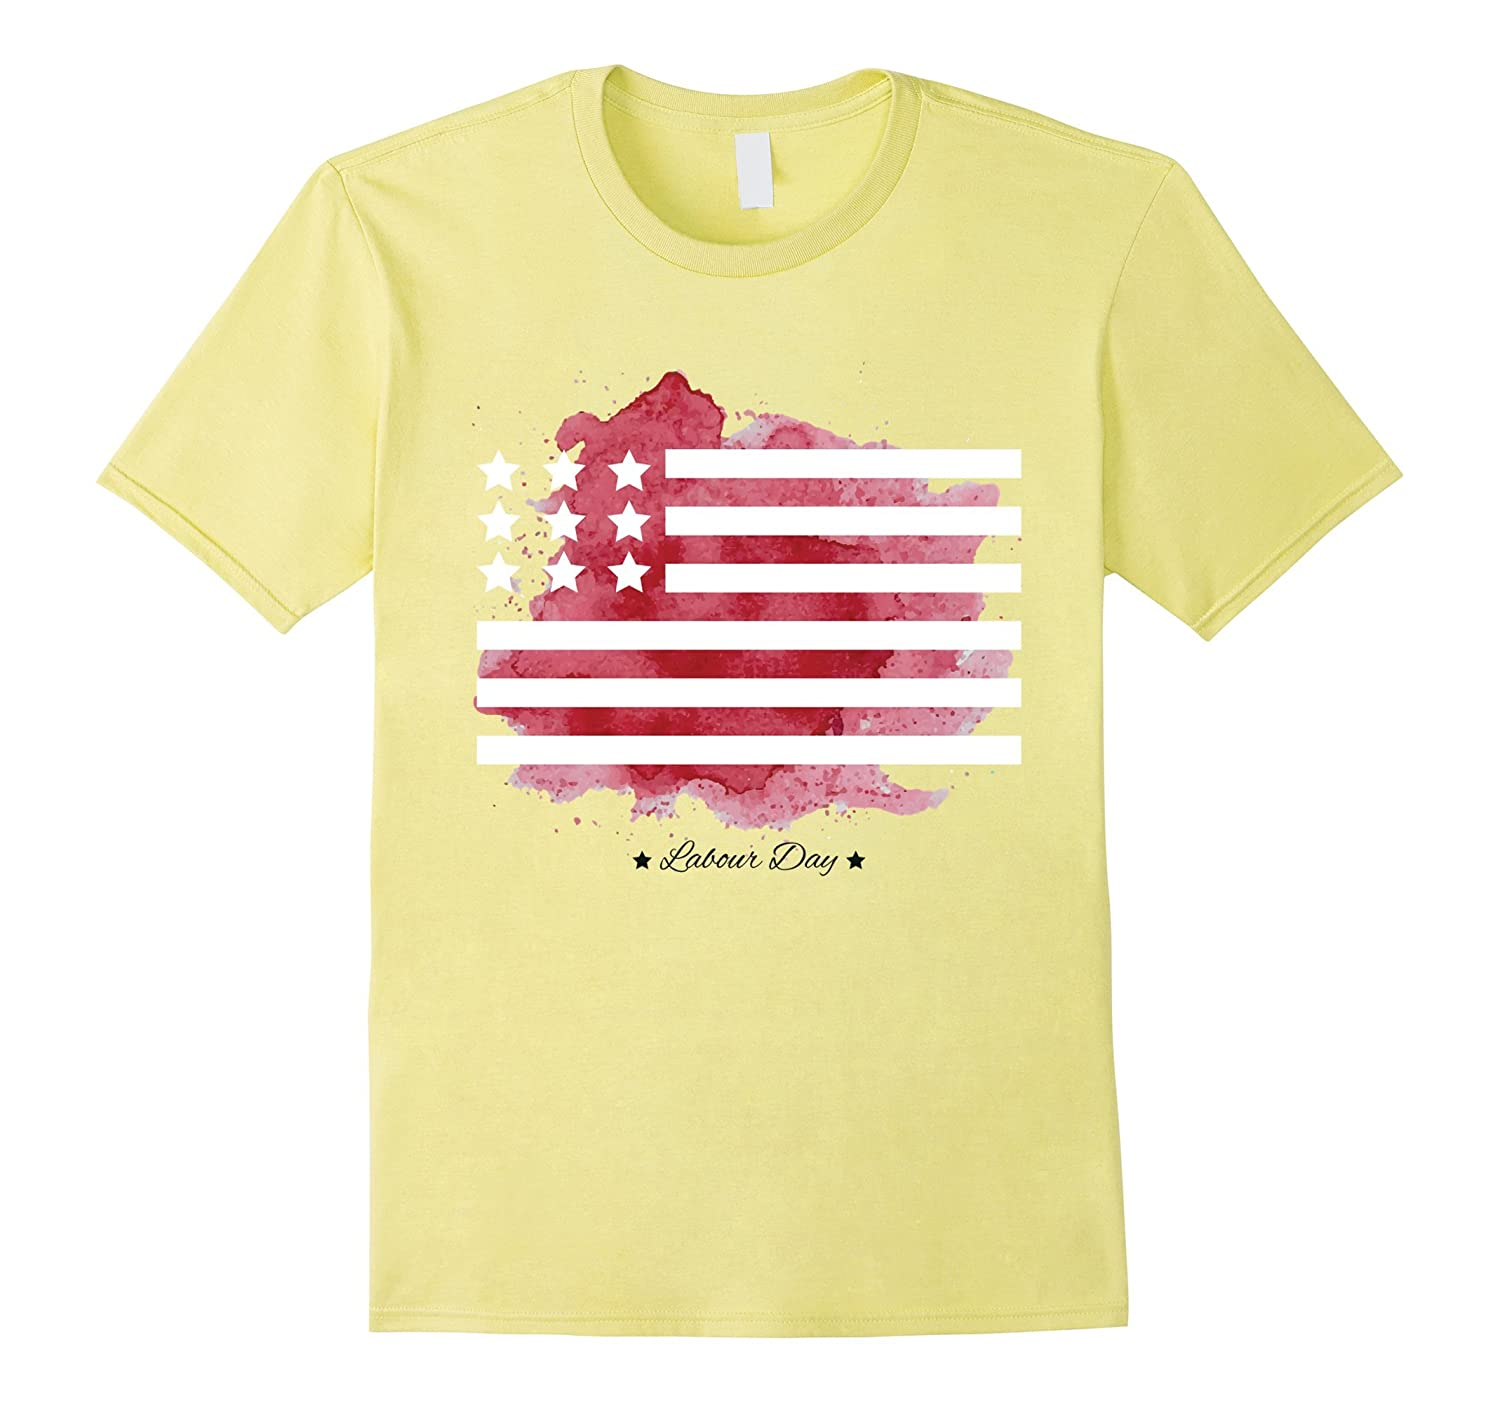 Labor Day With American Flag T-Shirt For Workers-BN